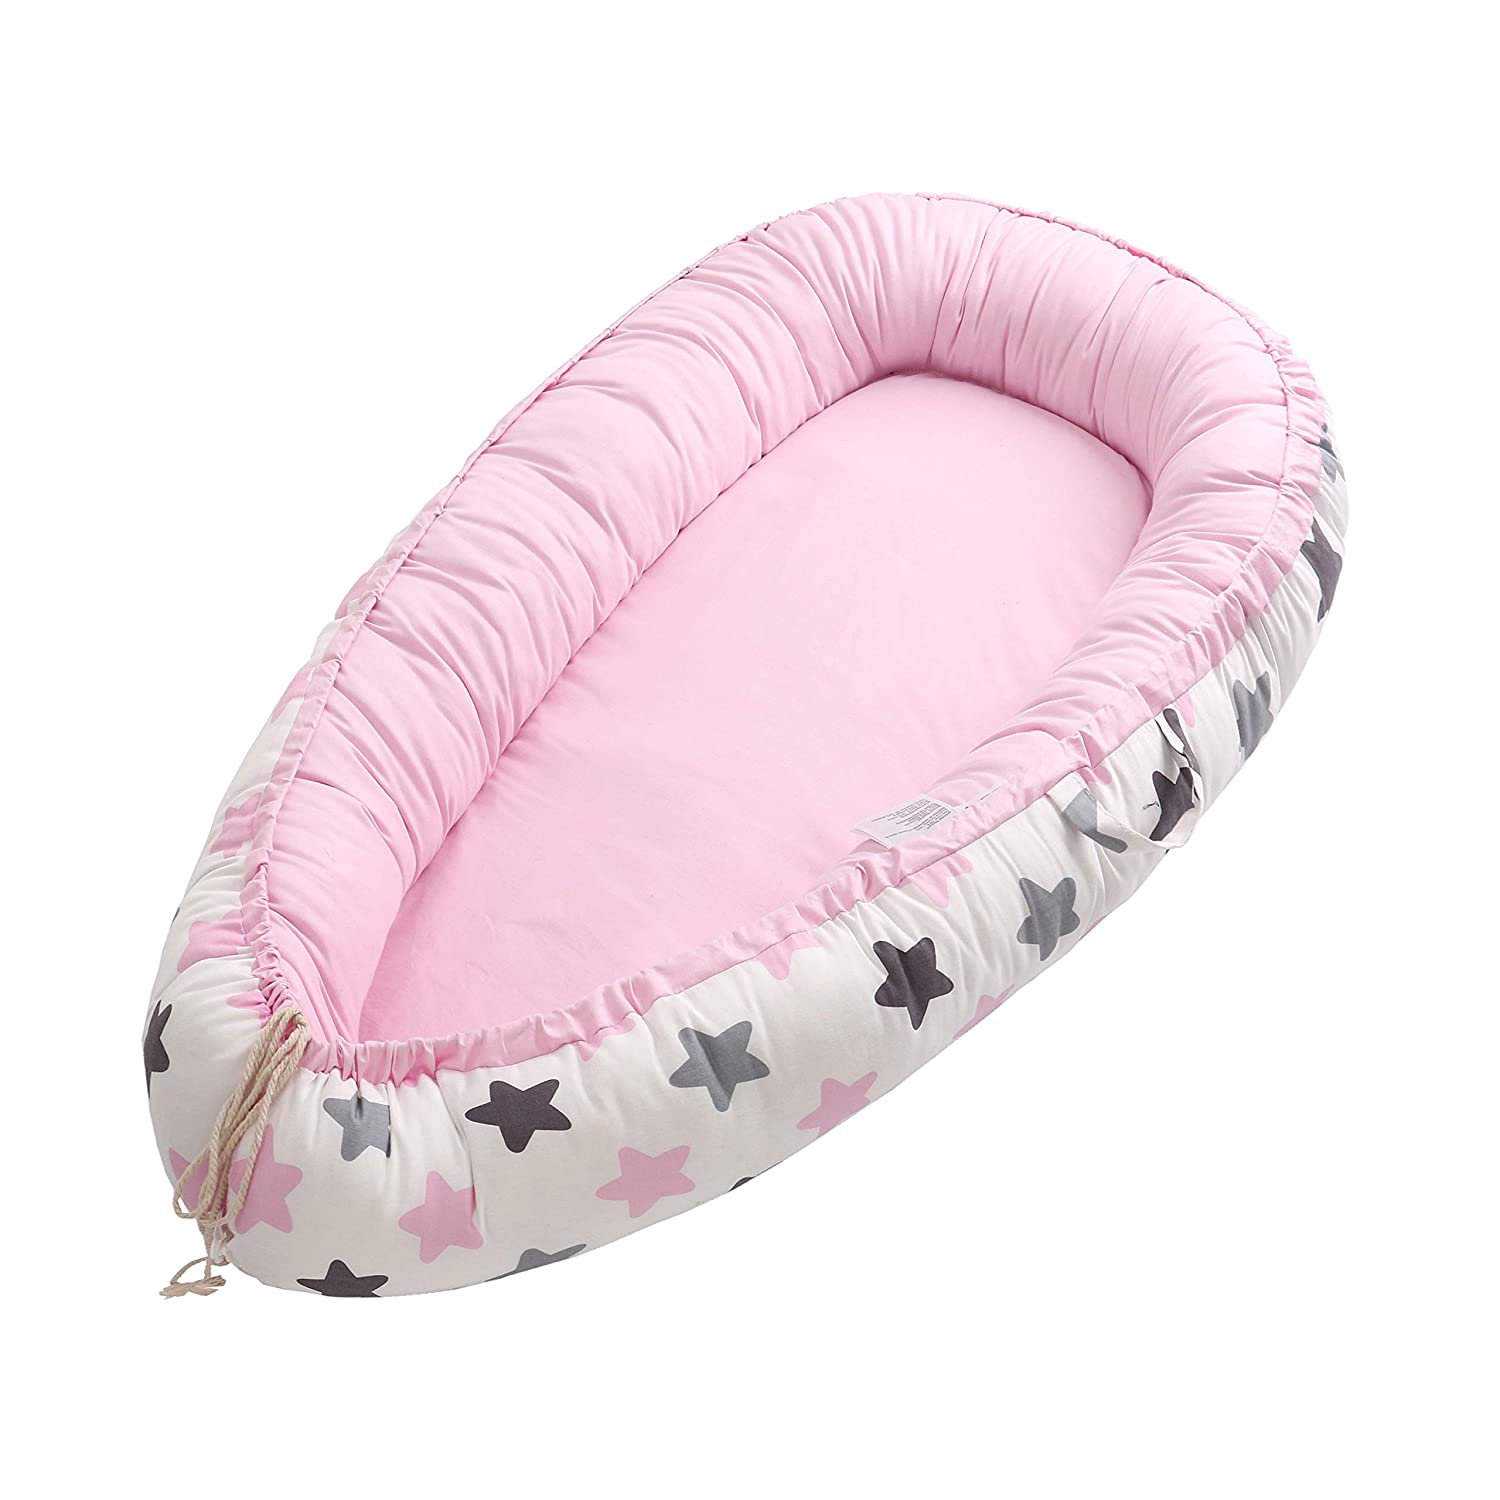 Baby Lounger Portable 100/% Organic Soft Cotton Breathable Crib Baby Nest and Baby Bassinet Deer Perfect for Co-Sleeping and Traveling 0-12 Months